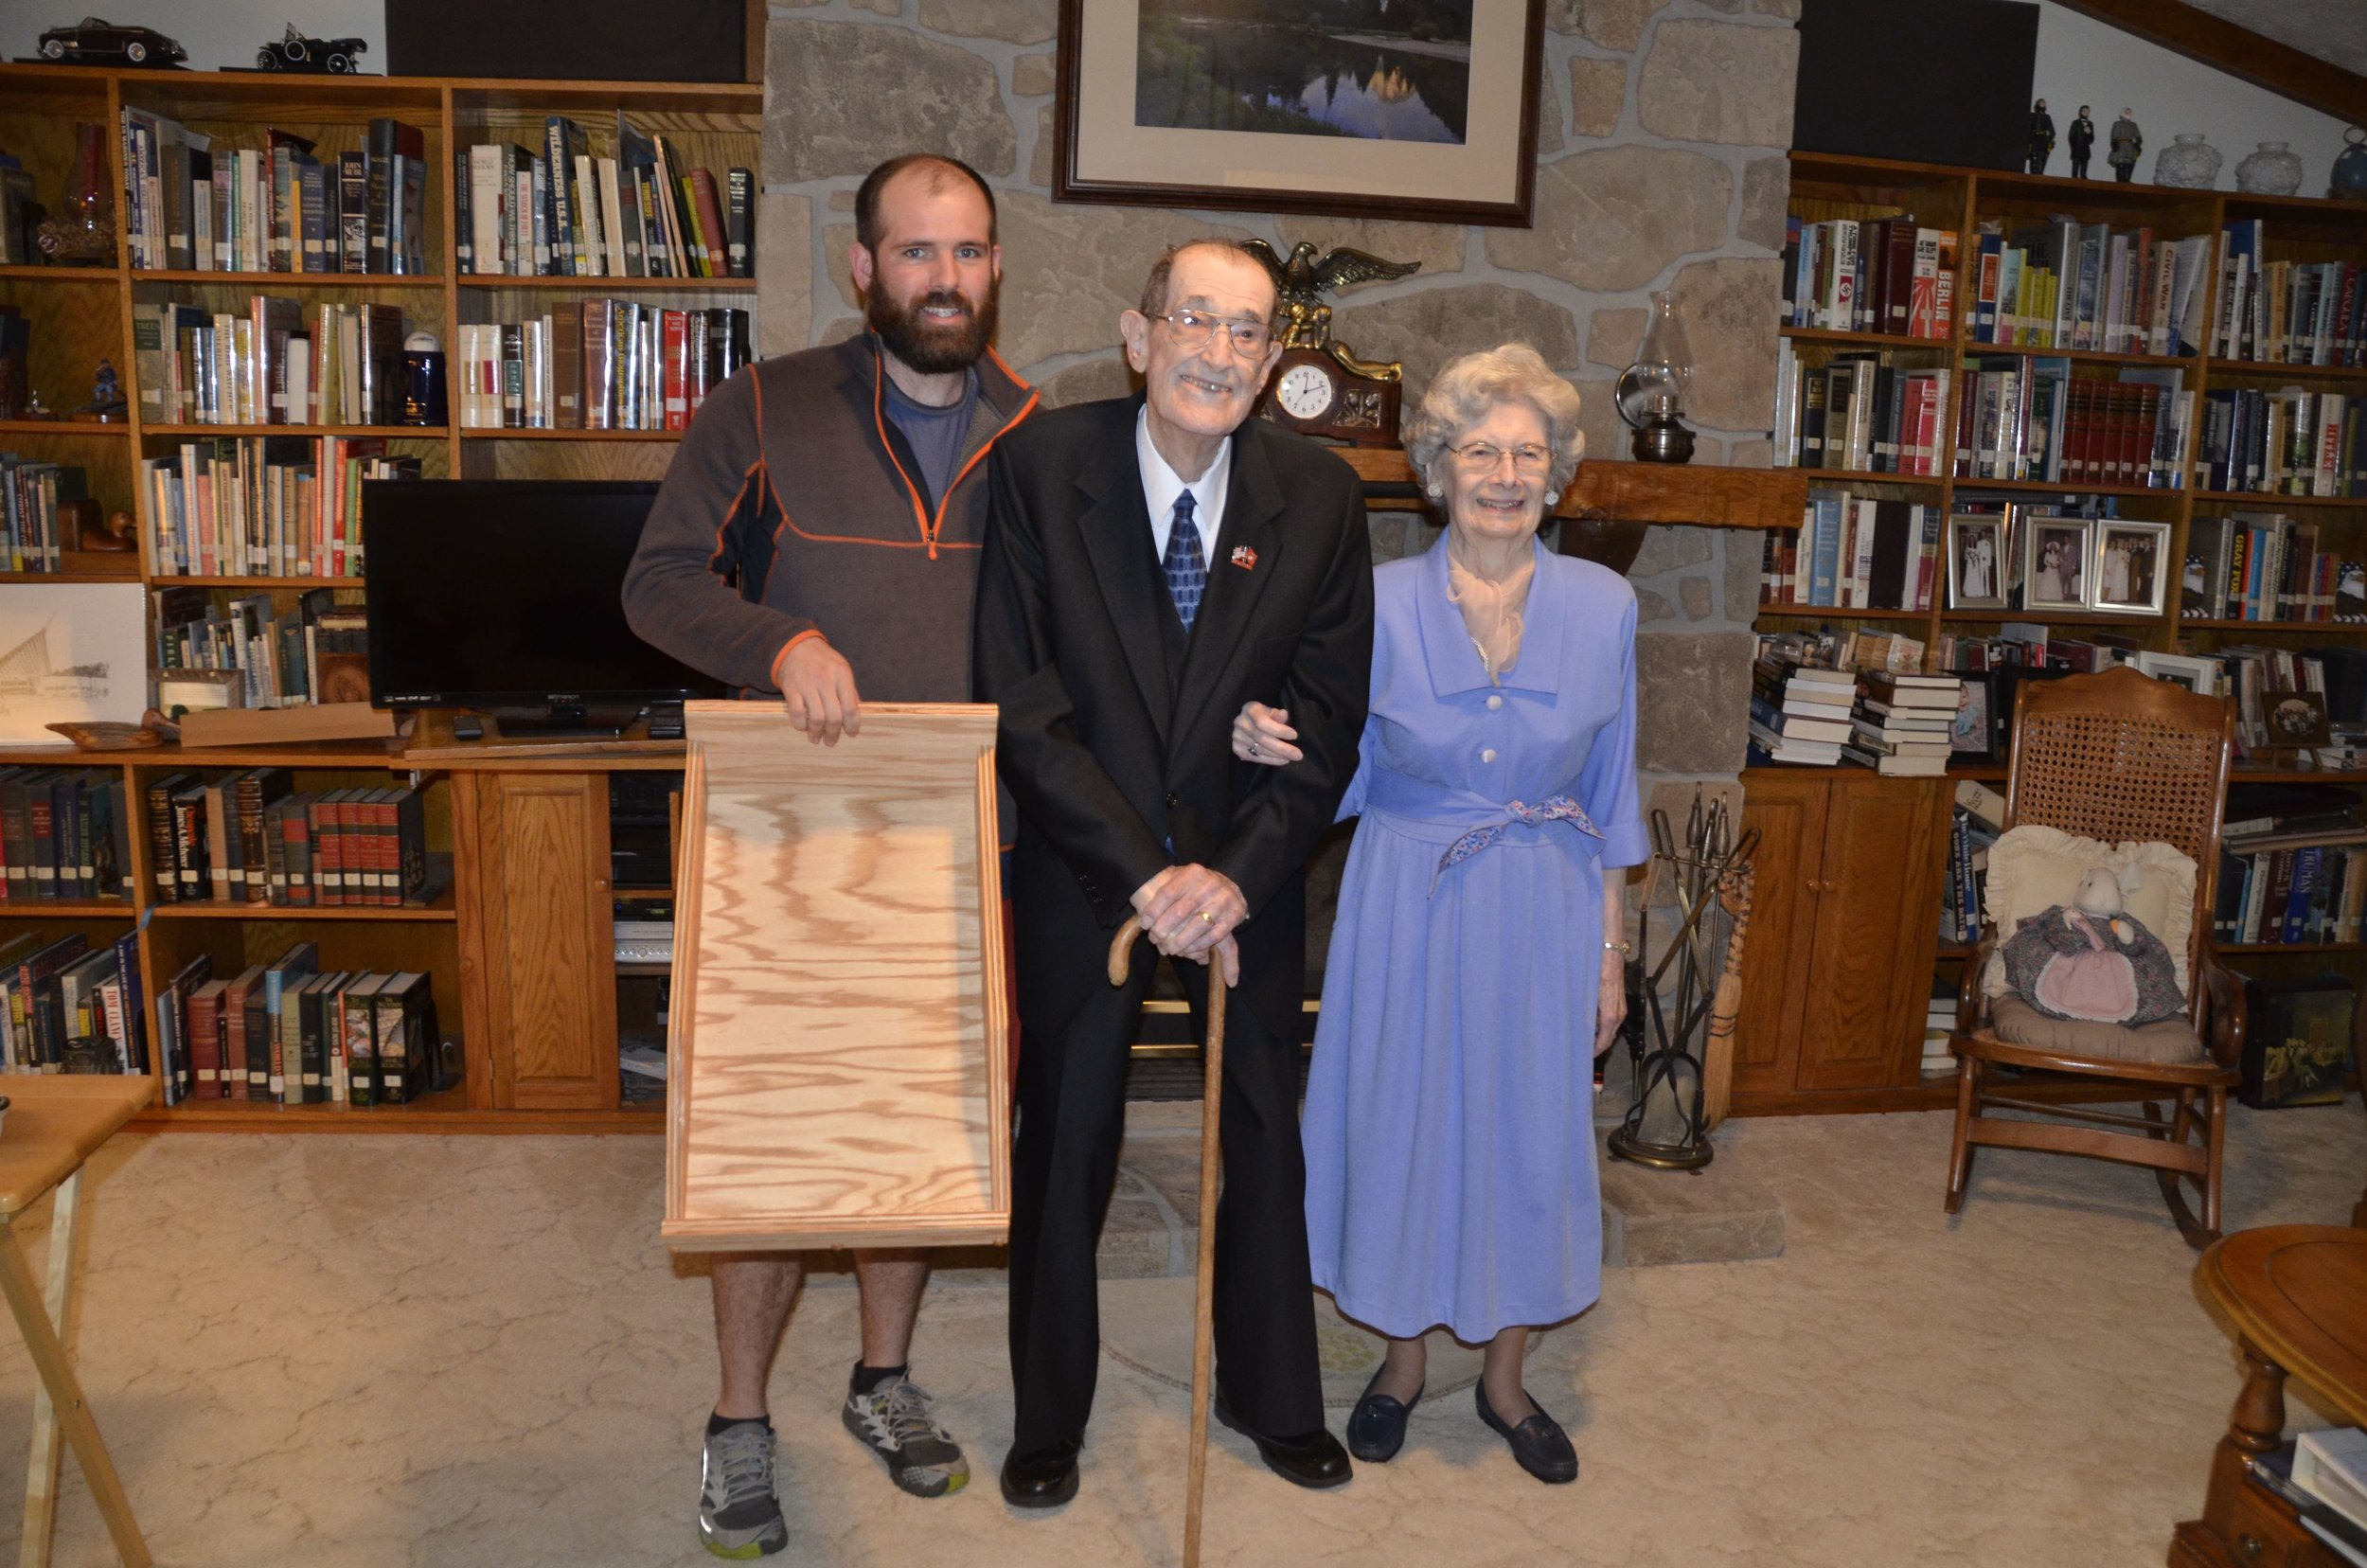 Holding a finished wooden divider with my Grandparents!